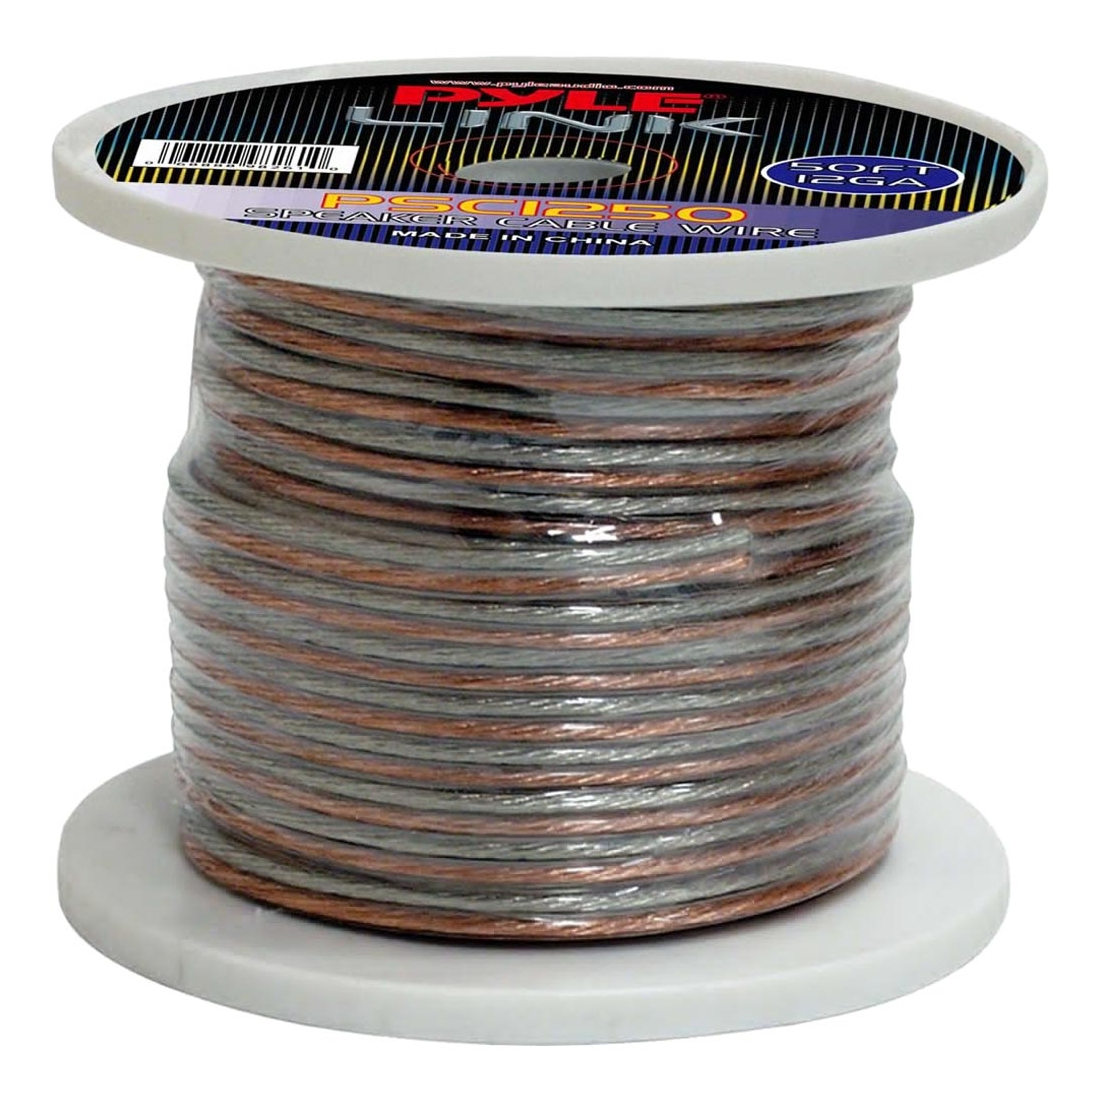 12 Gauge 50 ft. Spool of High Quality Speaker Zip Wire - Walmart.com